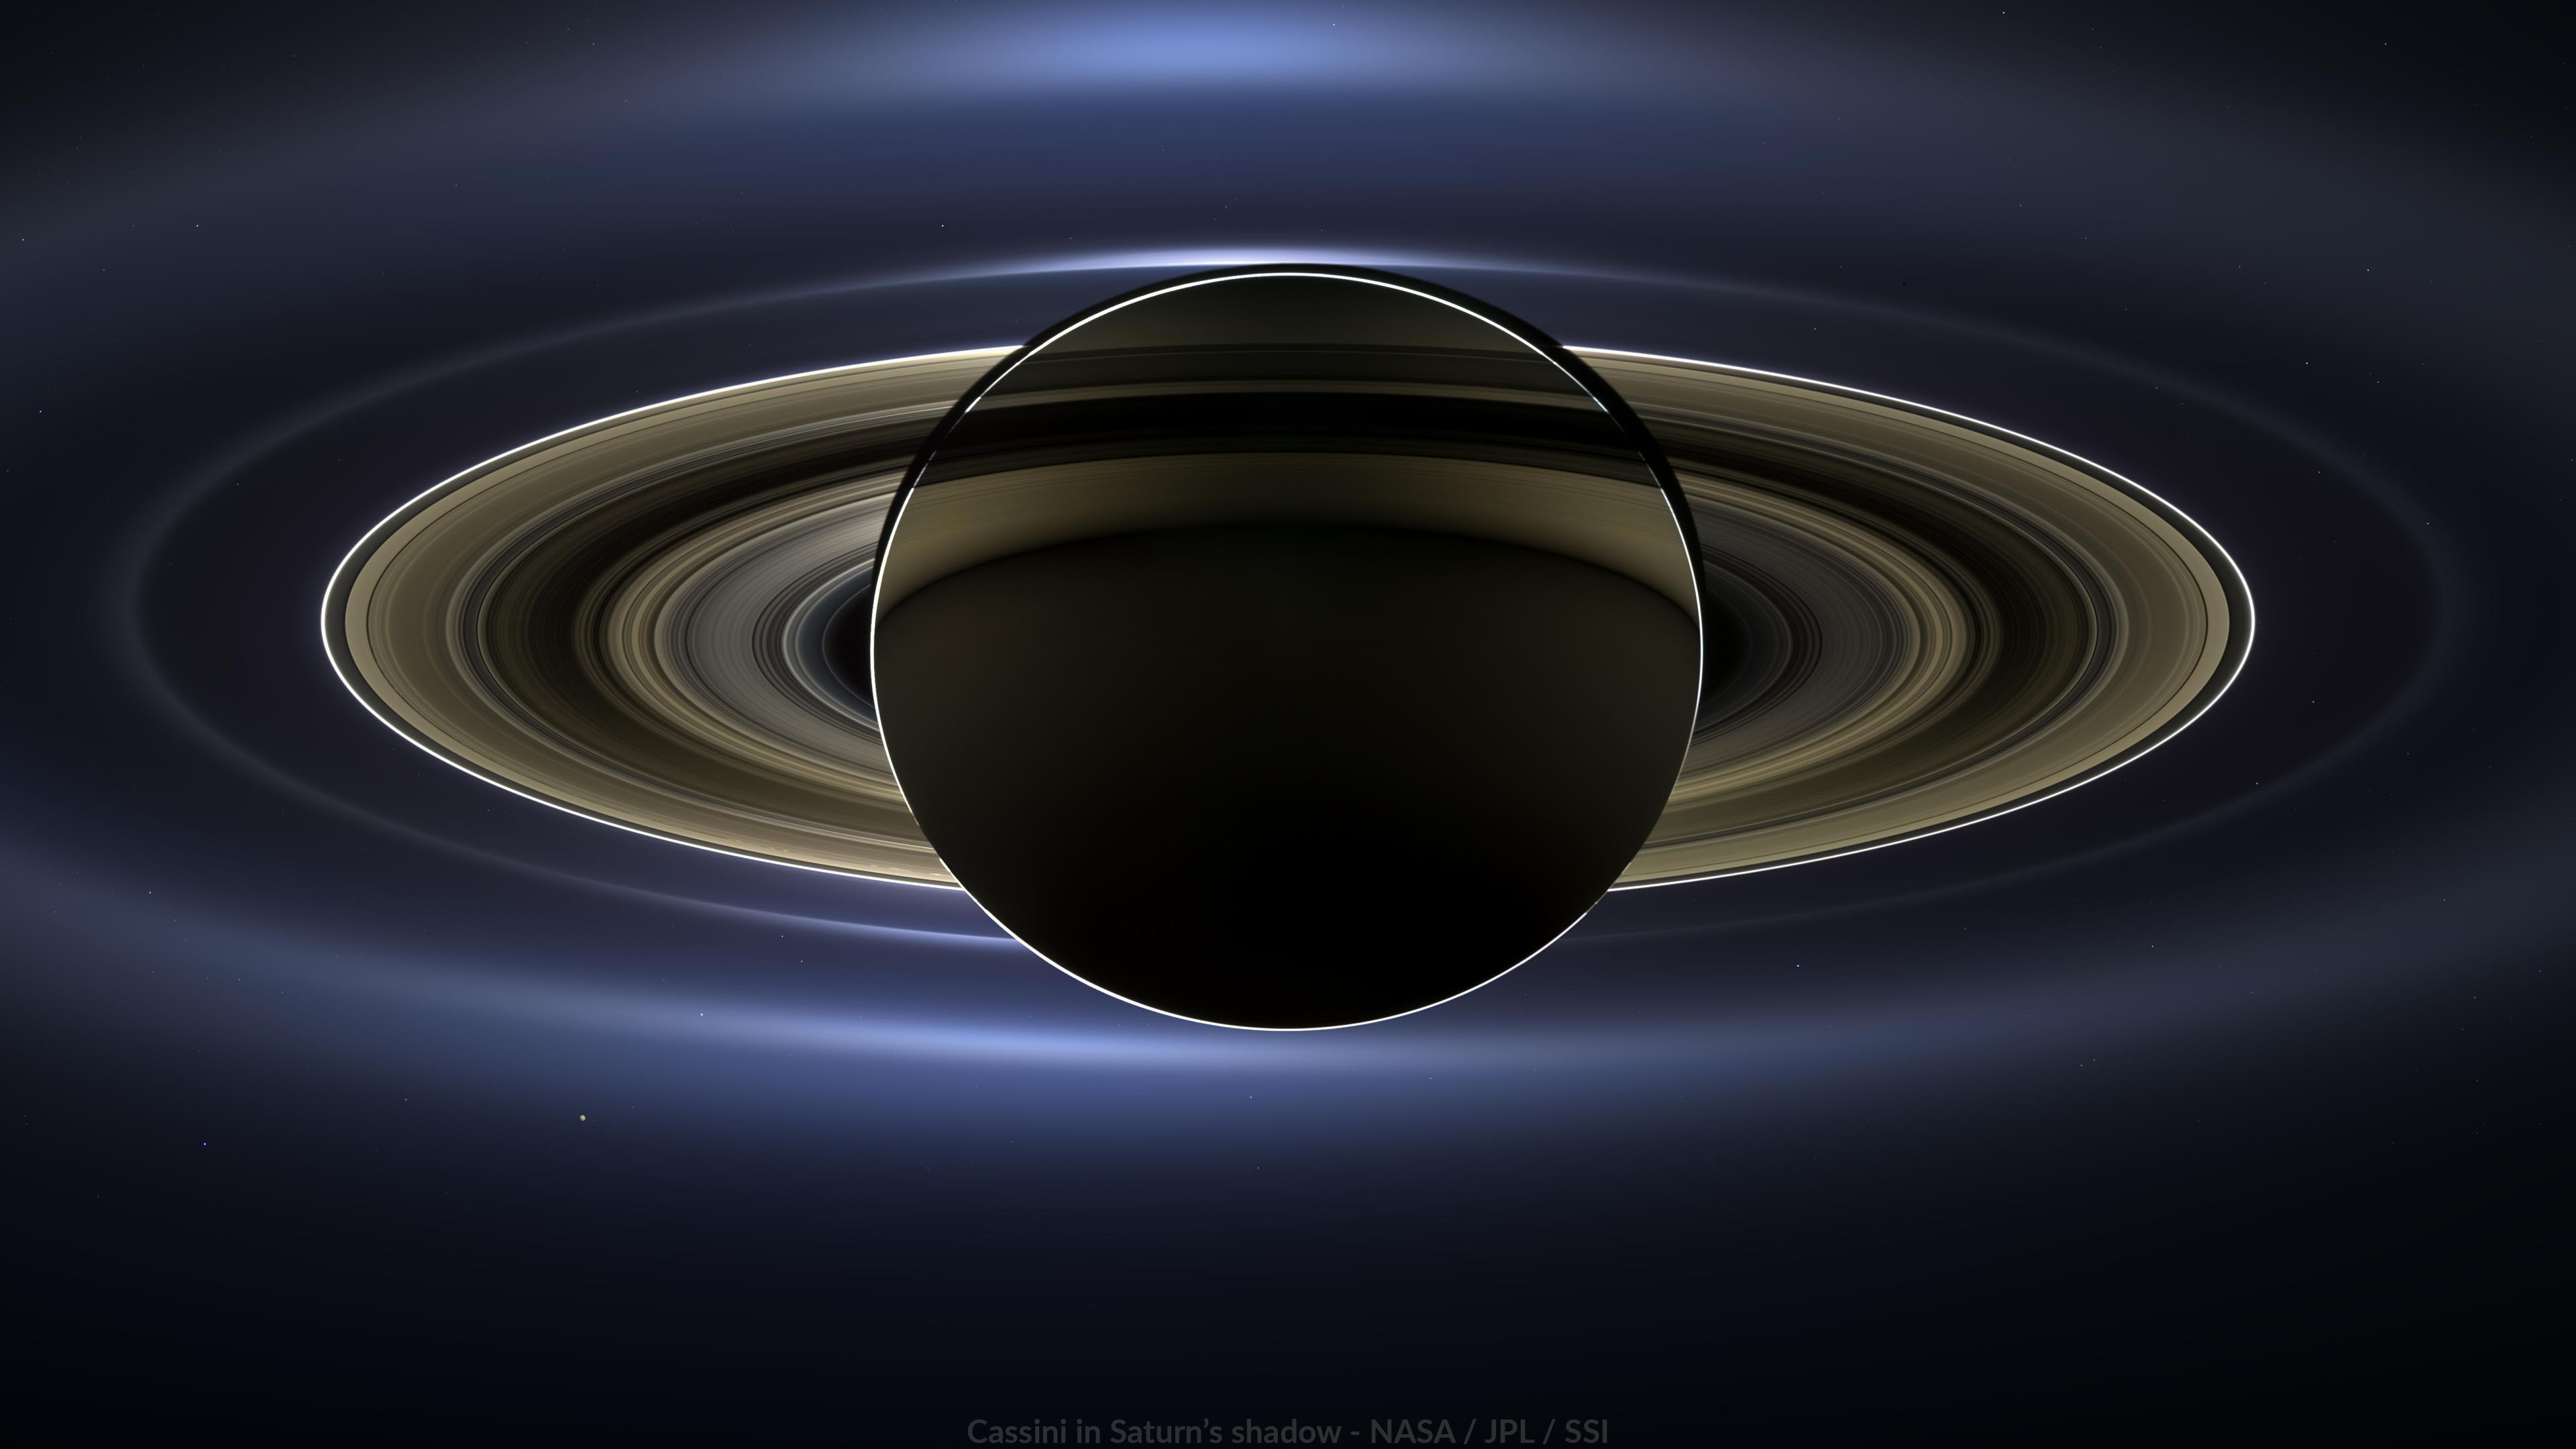 Wallpaper In Saturn S Shadow The Day The Earth Smiled The Images, Photos, Reviews